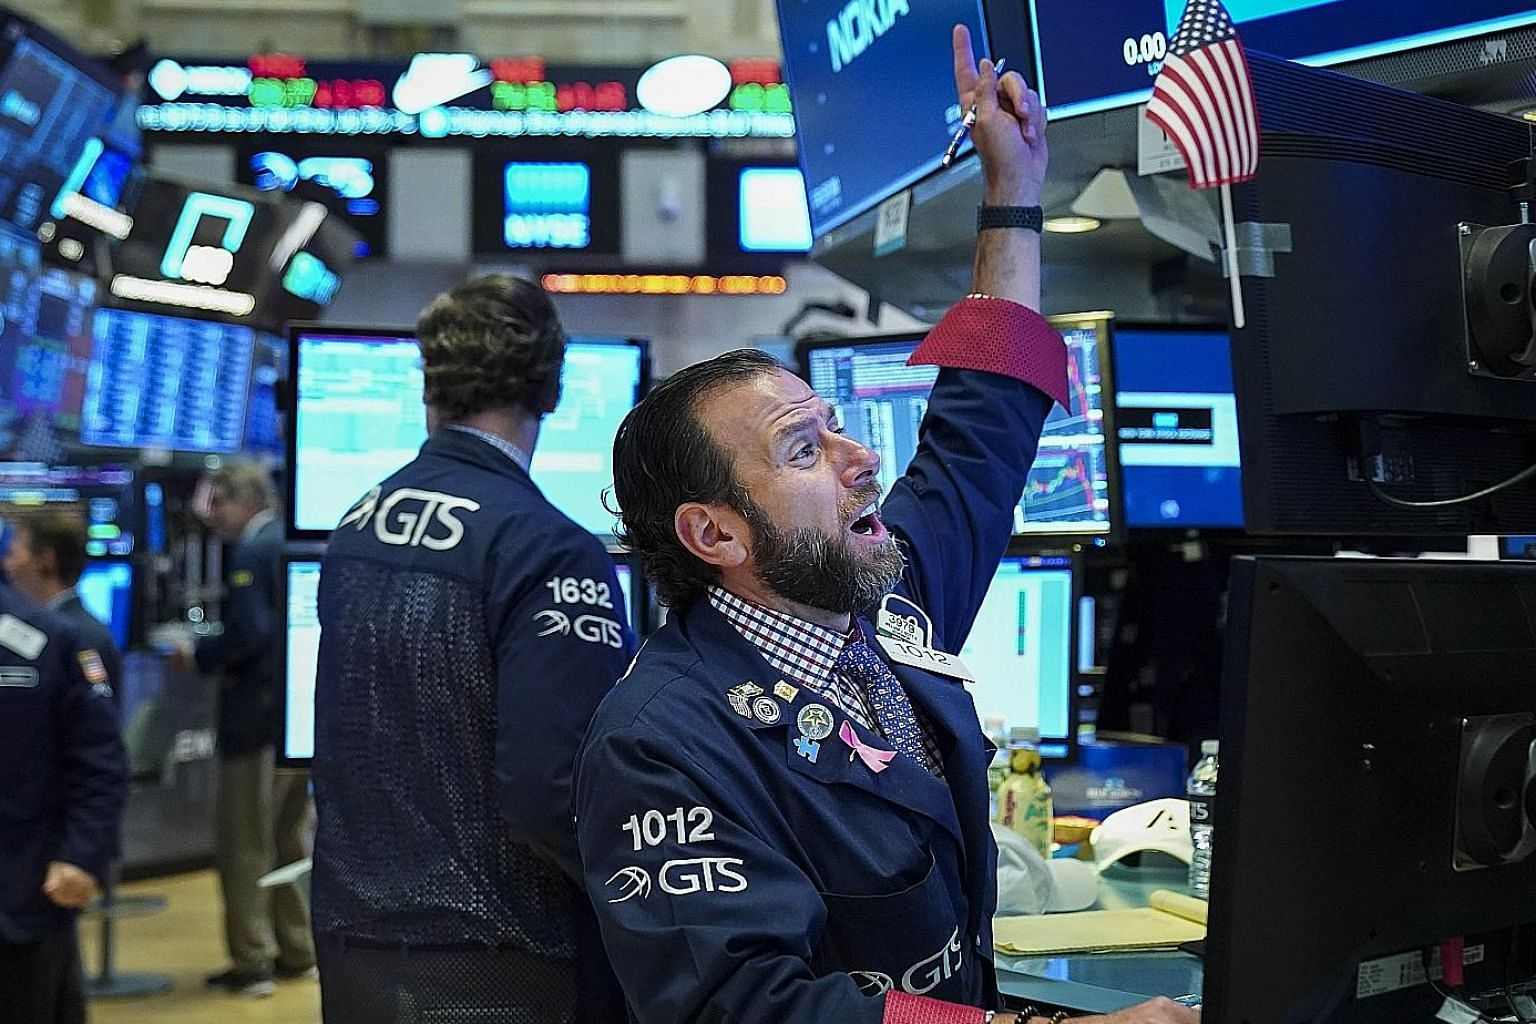 The US earnings reporting season kicks into full gear this week, with results expected from more than 200 companies. Wall Street's focus will be on tech firms, carmakers and oil majors, among others. Analysts expect volatility to continue to persist